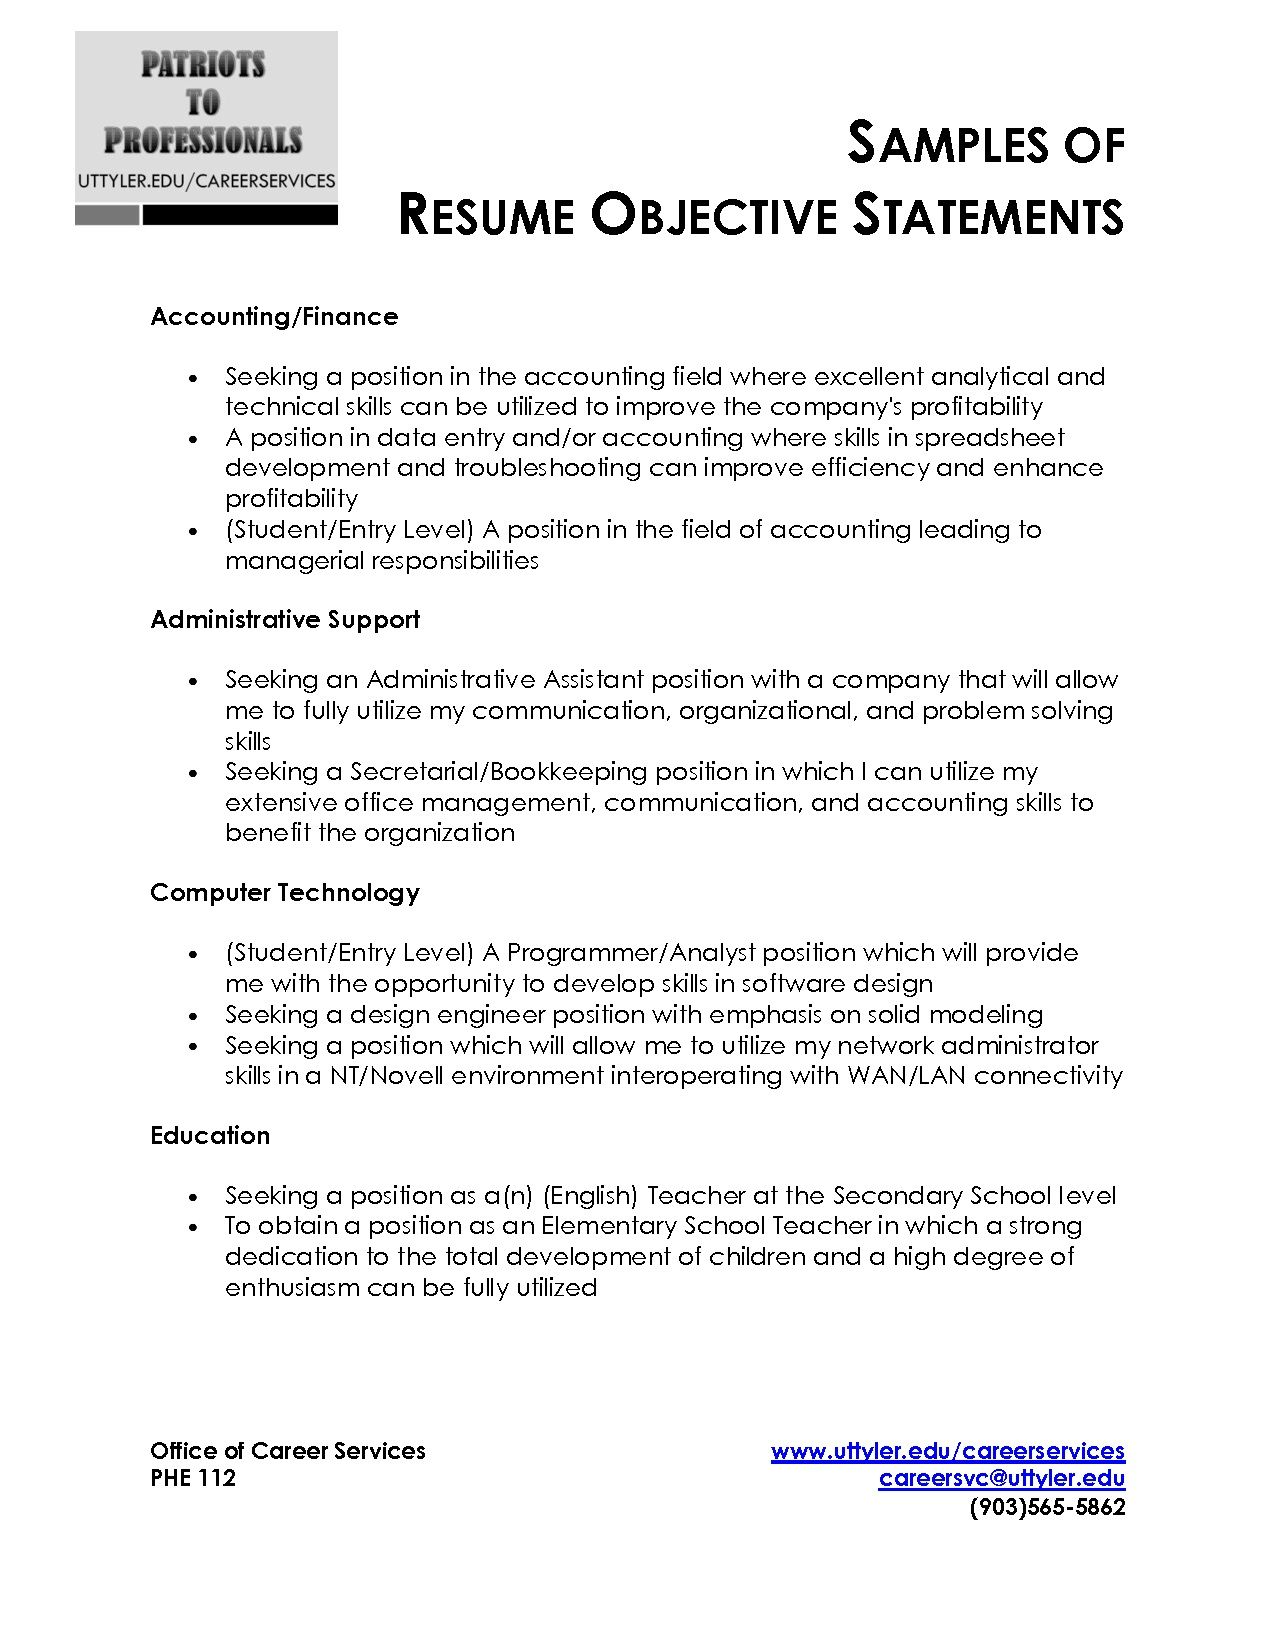 Best Objective Statements For Resumes Pin By Rachel Franco On Resume Writing Sample Resume